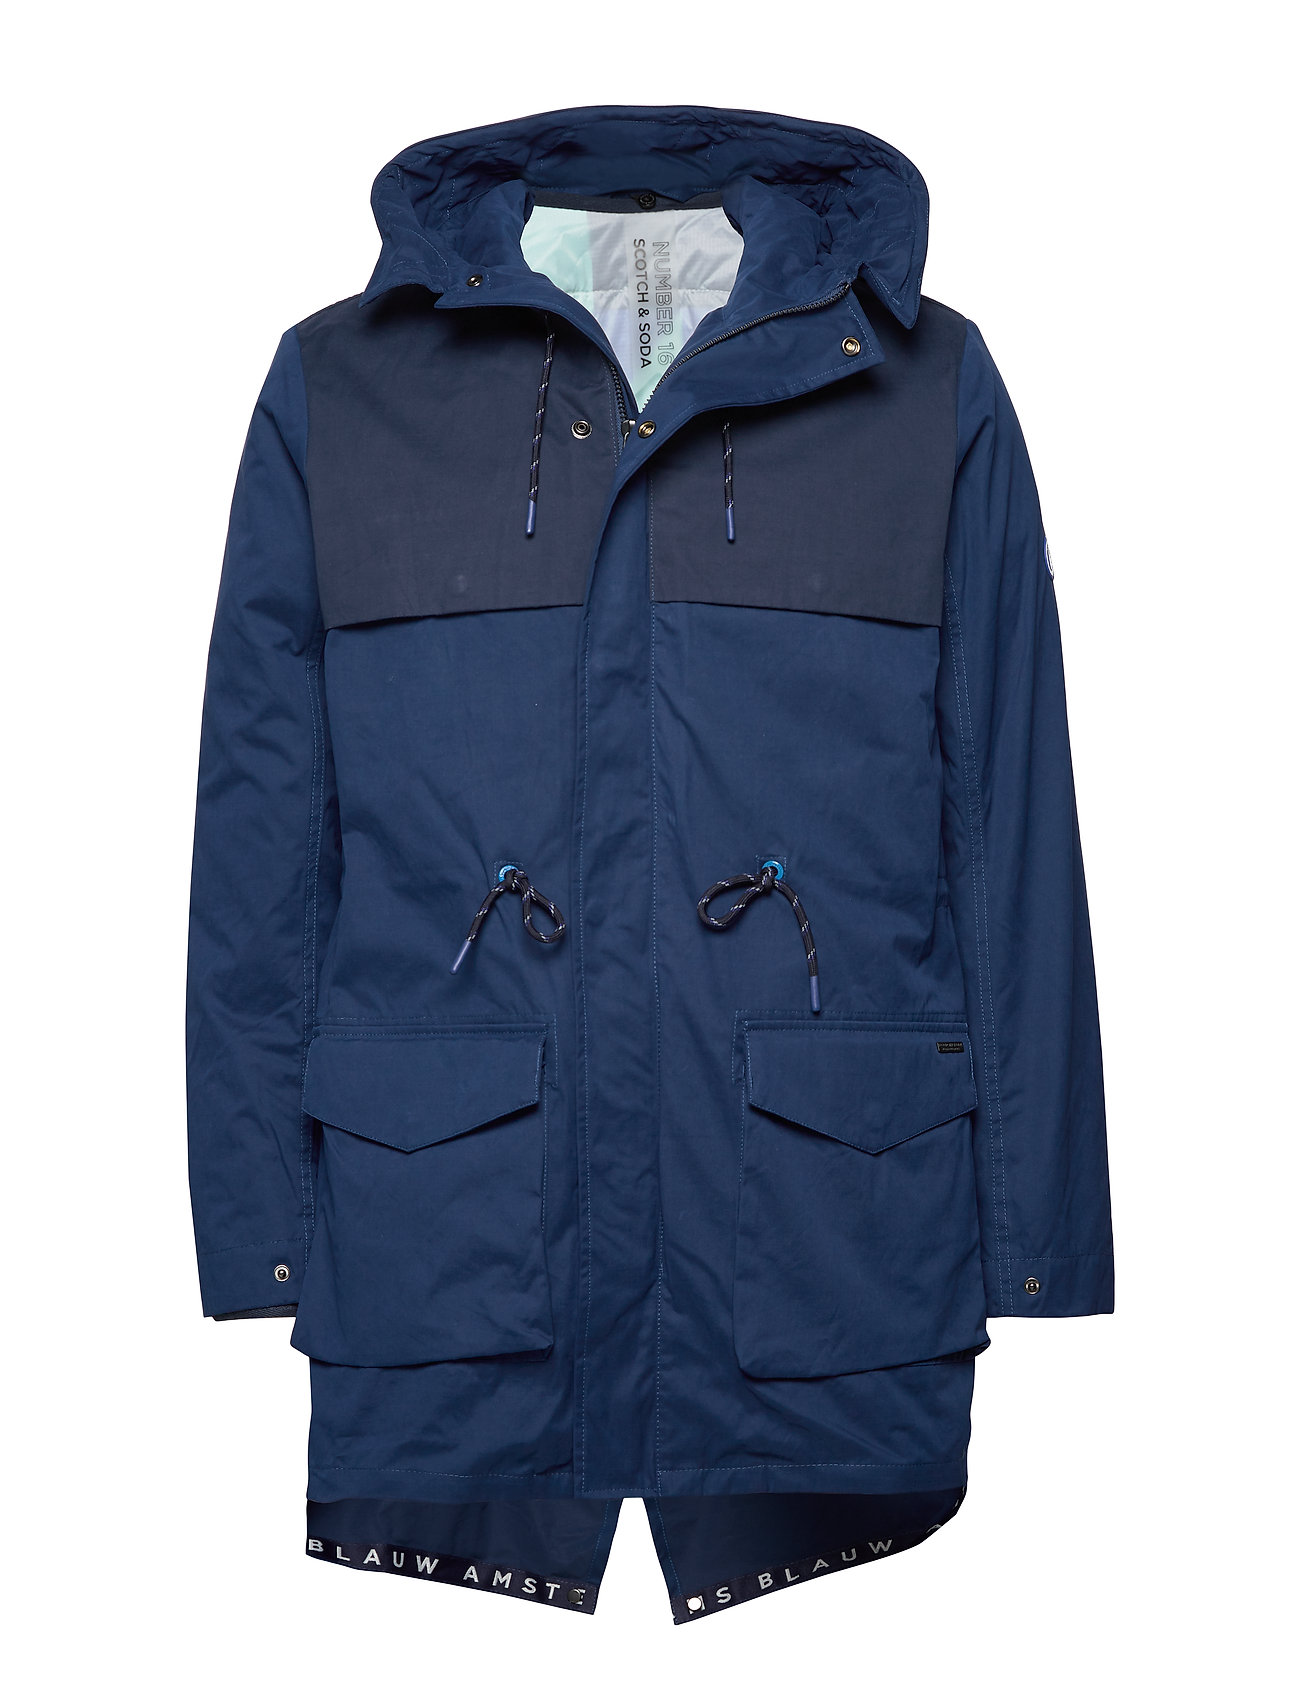 Image of Ams Blauw Parka With Transparent Quilted Inner Jacket Parka Jakke Blå Scotch & Soda (3276941969)